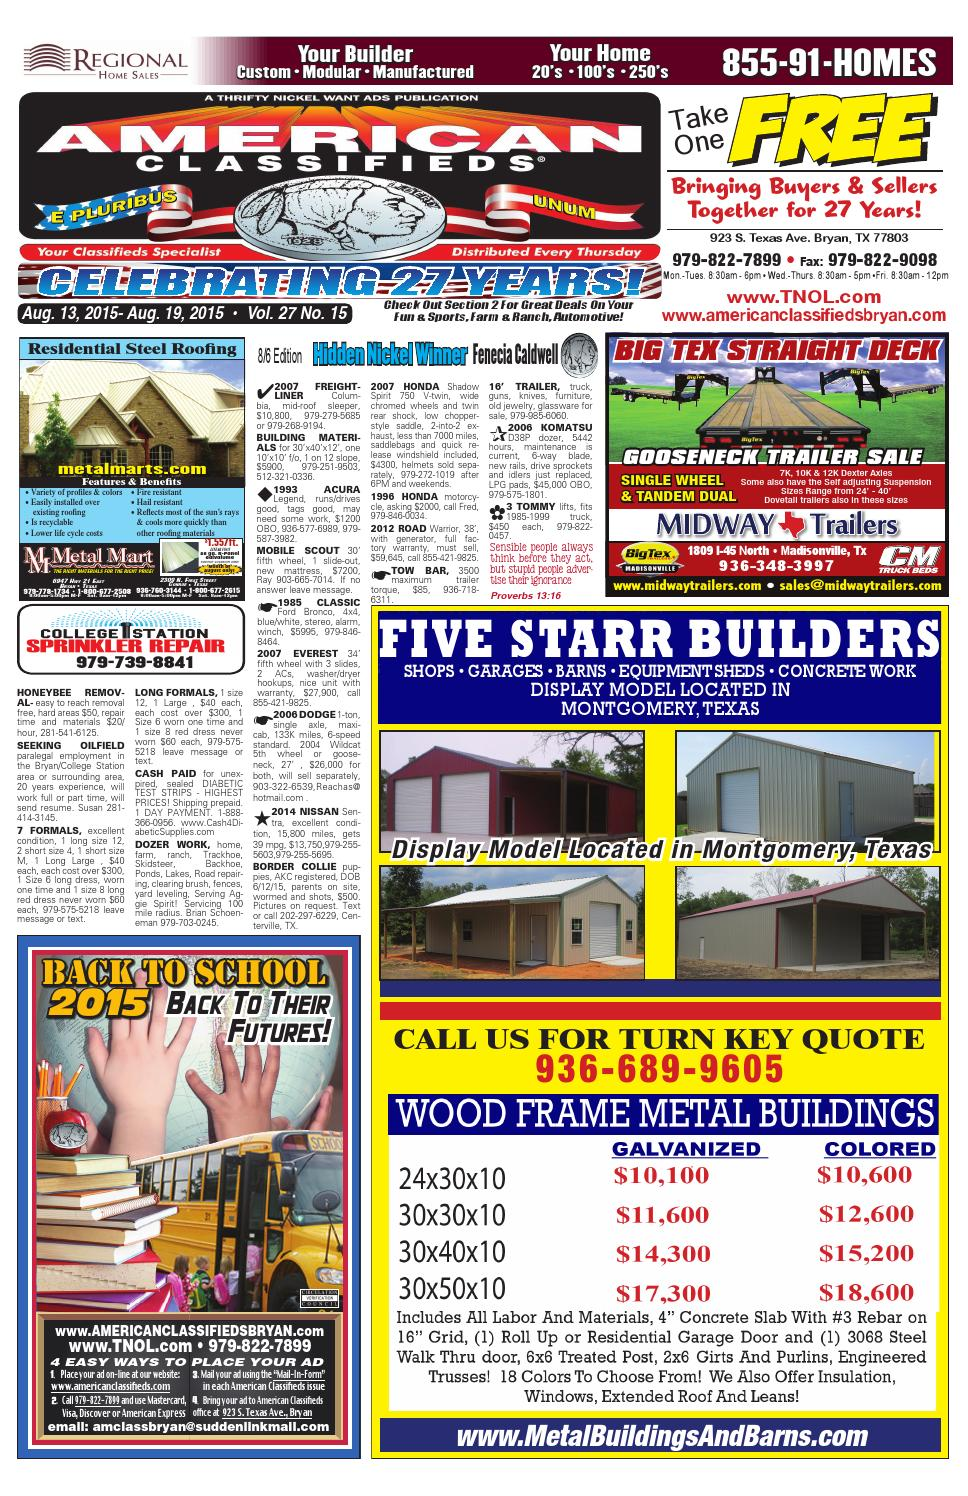 American Classifieds Aug 13th Edition Bryan College Station By 120240 Volt 3 Phase Delta High Leg Electrician Talk 2016 Car Release Issuu